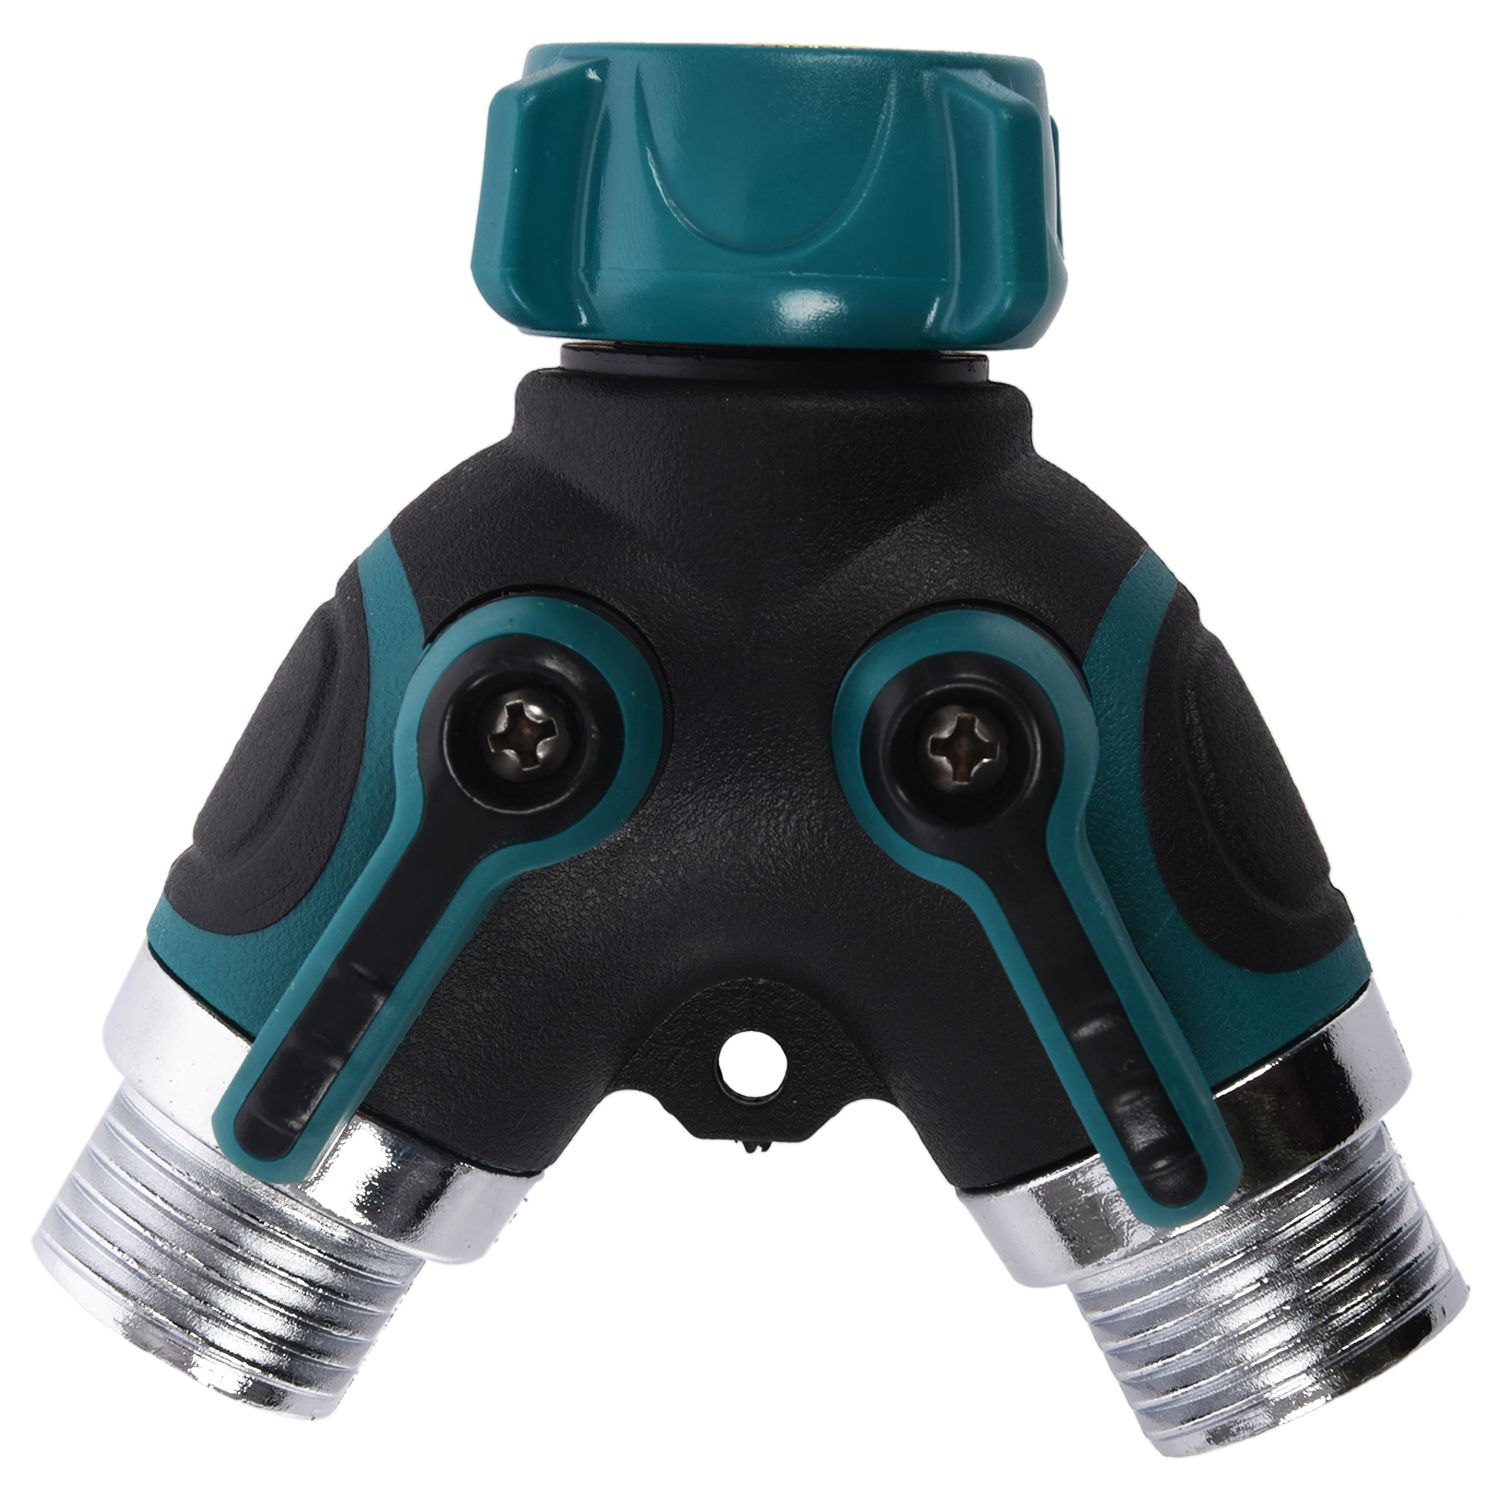 Garden Hose Splitter 2-way Y Shape Valve Hose To Hose Connector With 2 Shut Off Switch Metal ABS For Faucet Taps Pipe